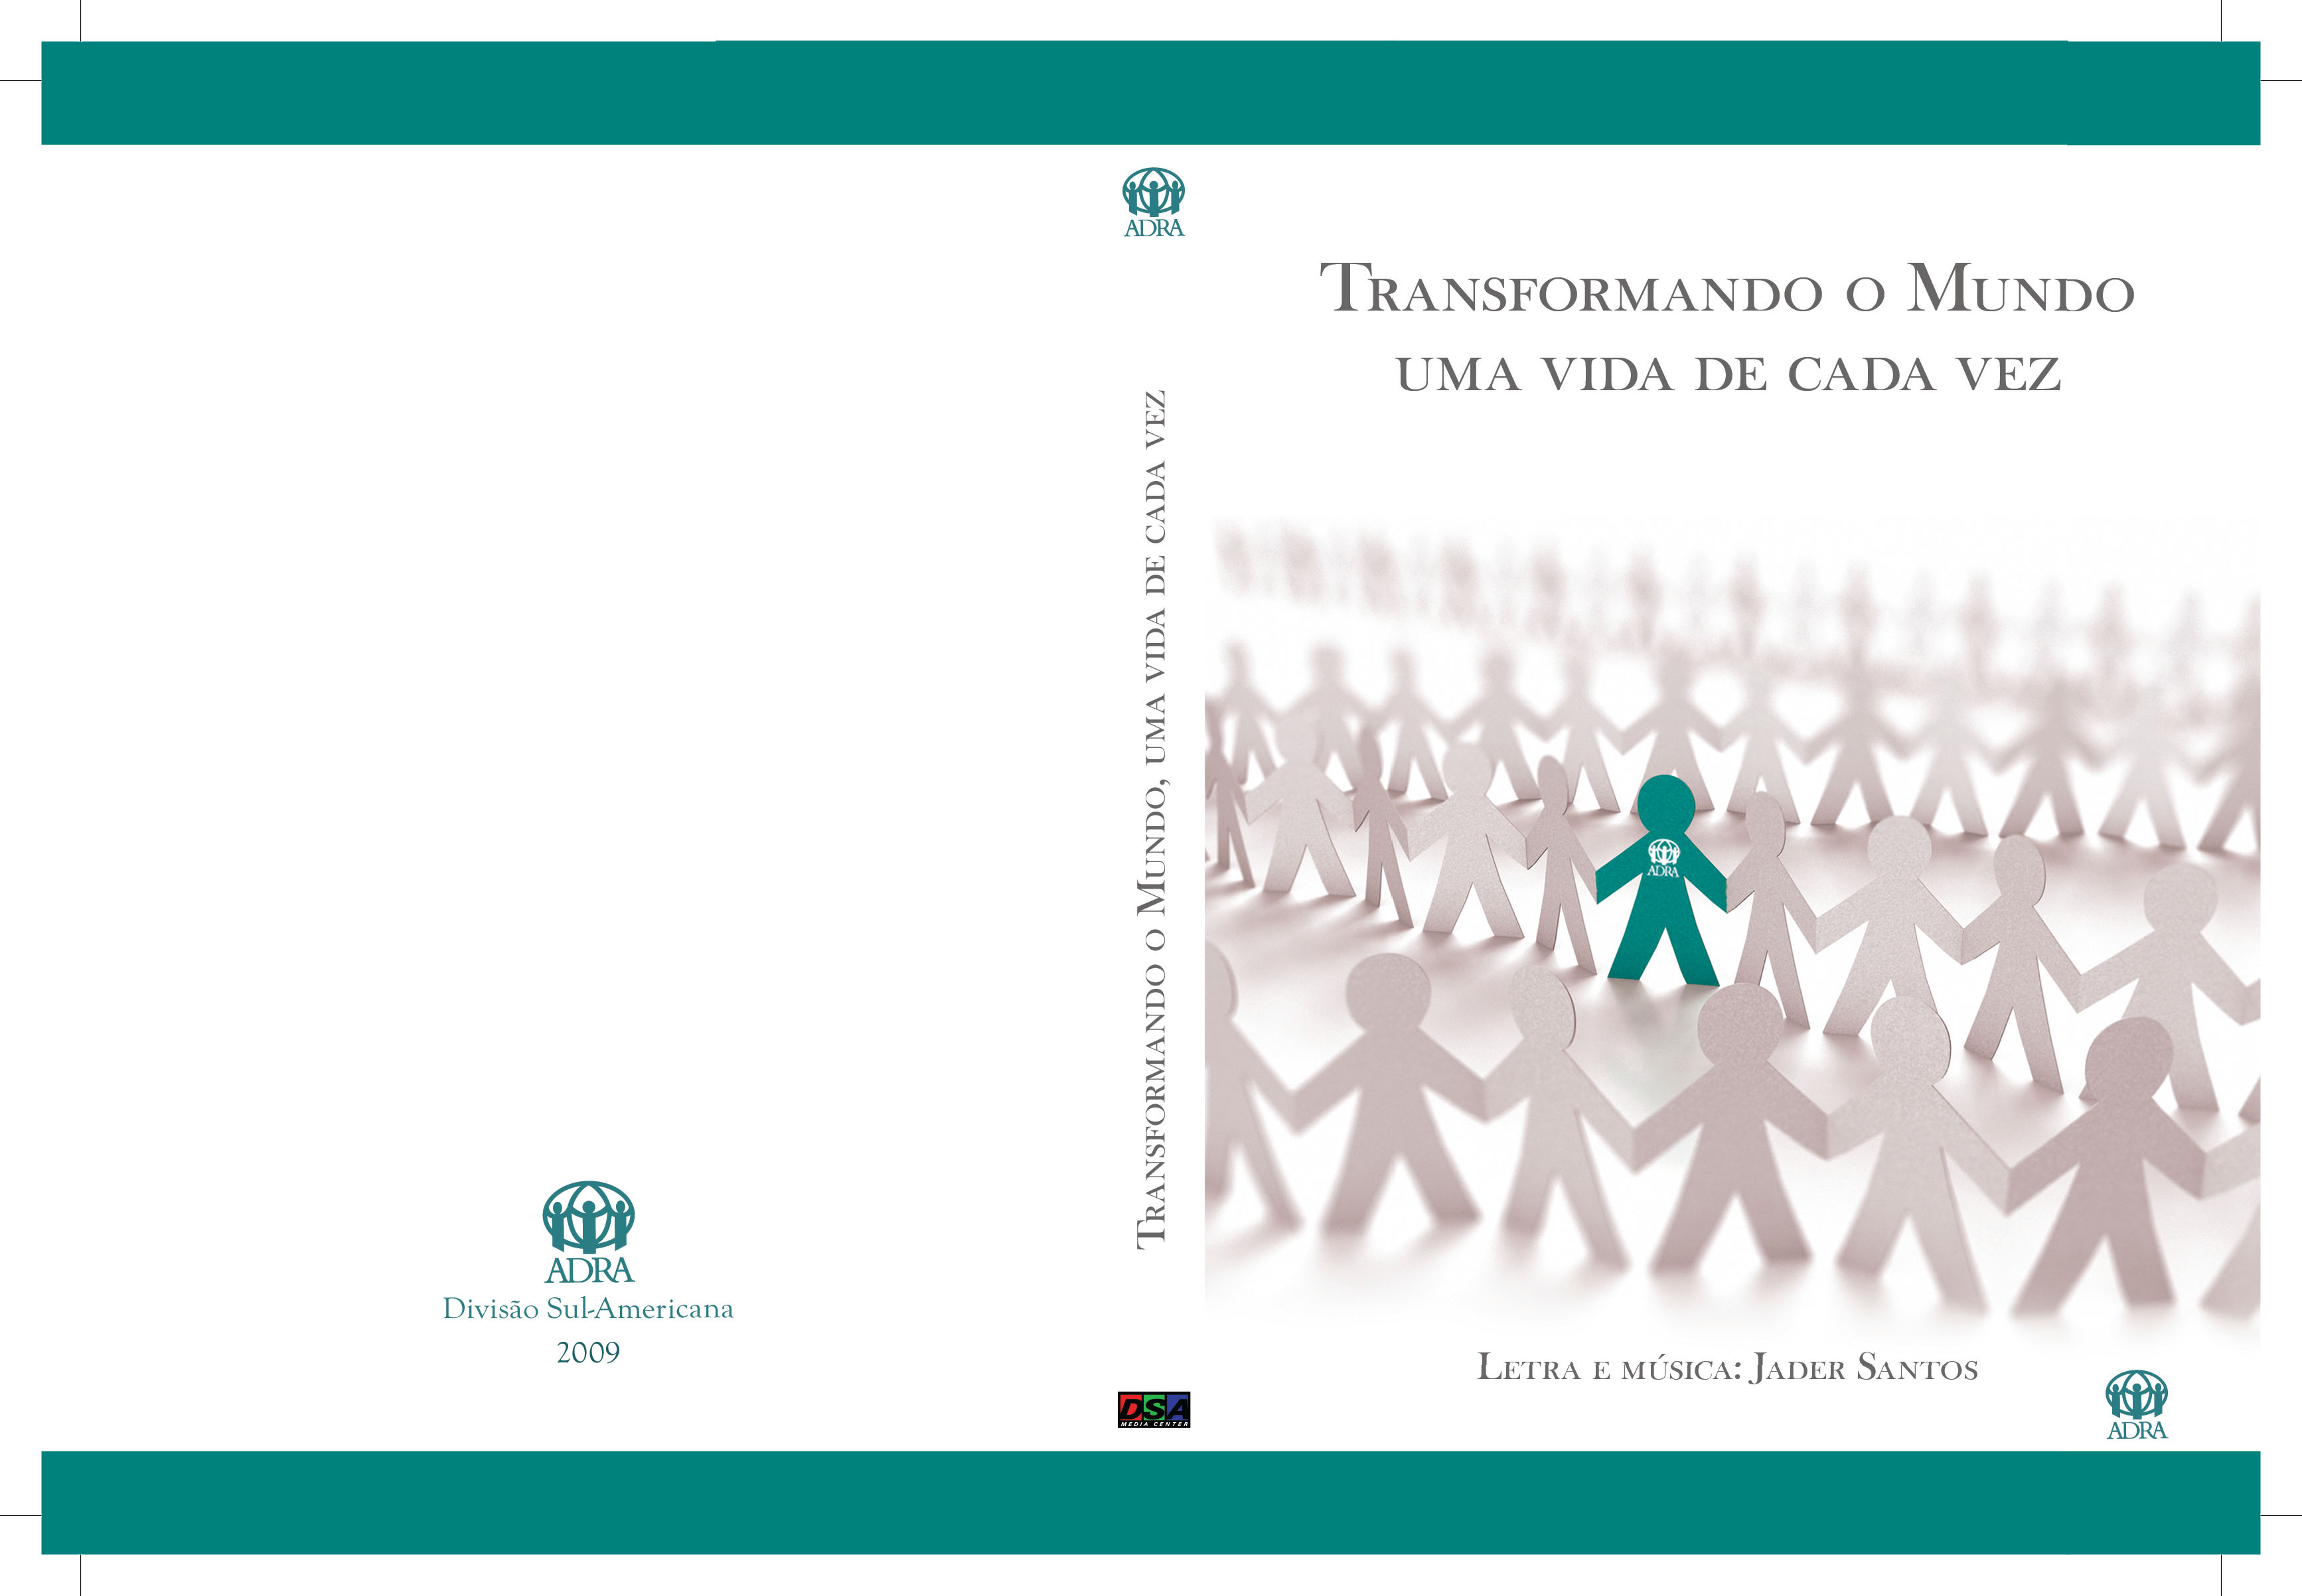 Capa do DVD – transformando o mundo